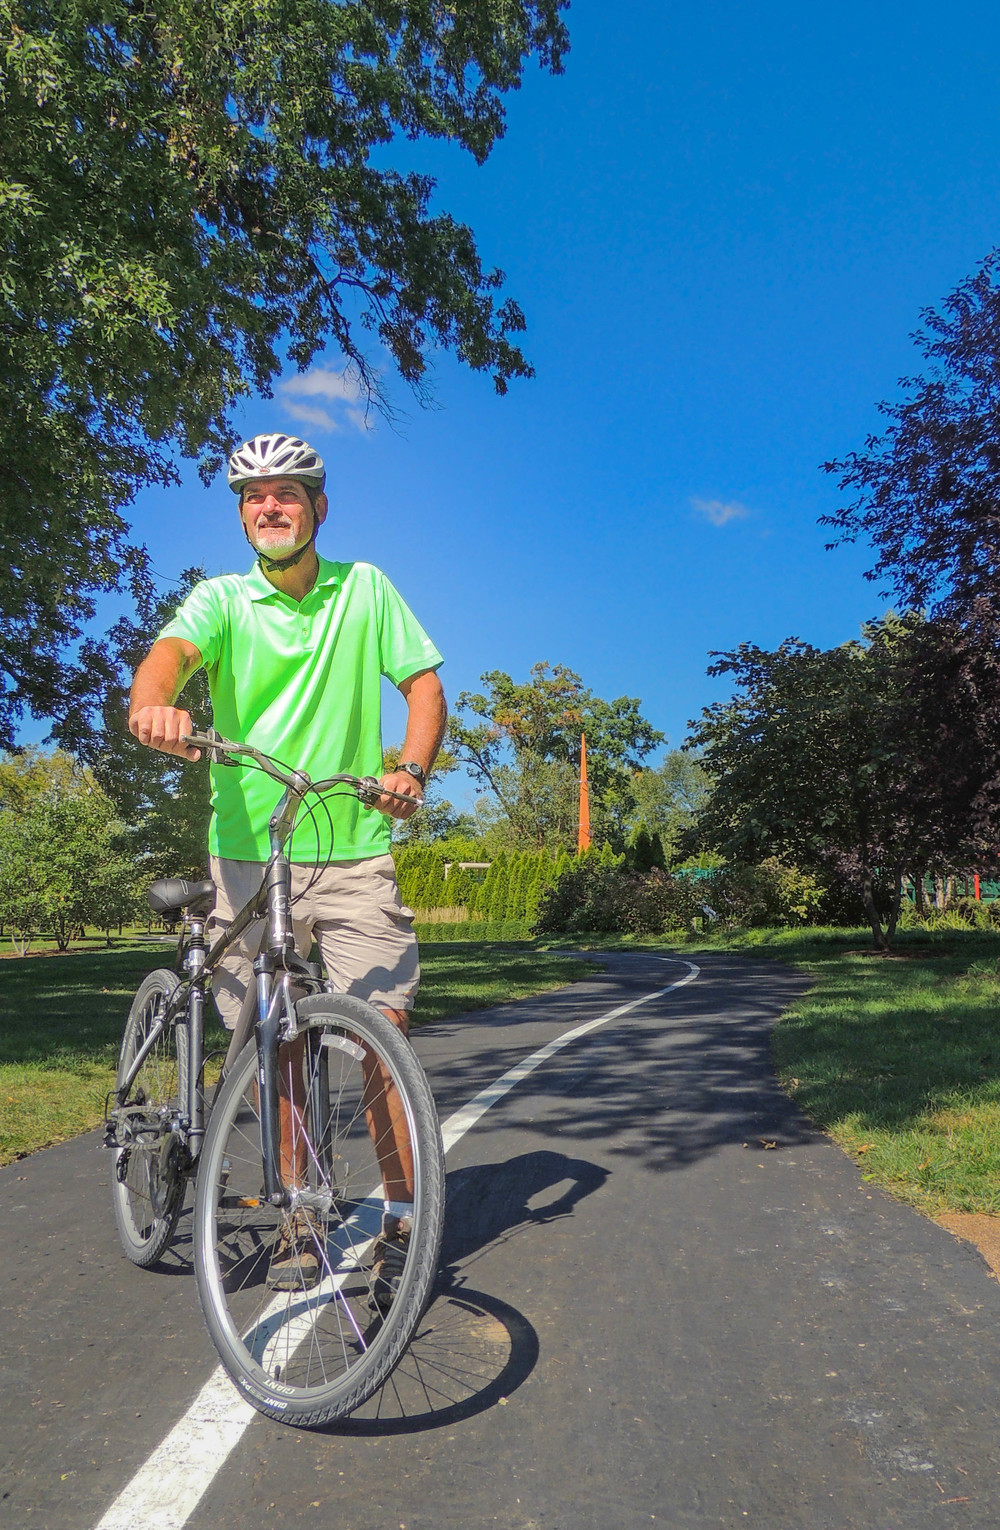 City Cycling Tour's Chris Gerli, photographed by Forest Park Forever